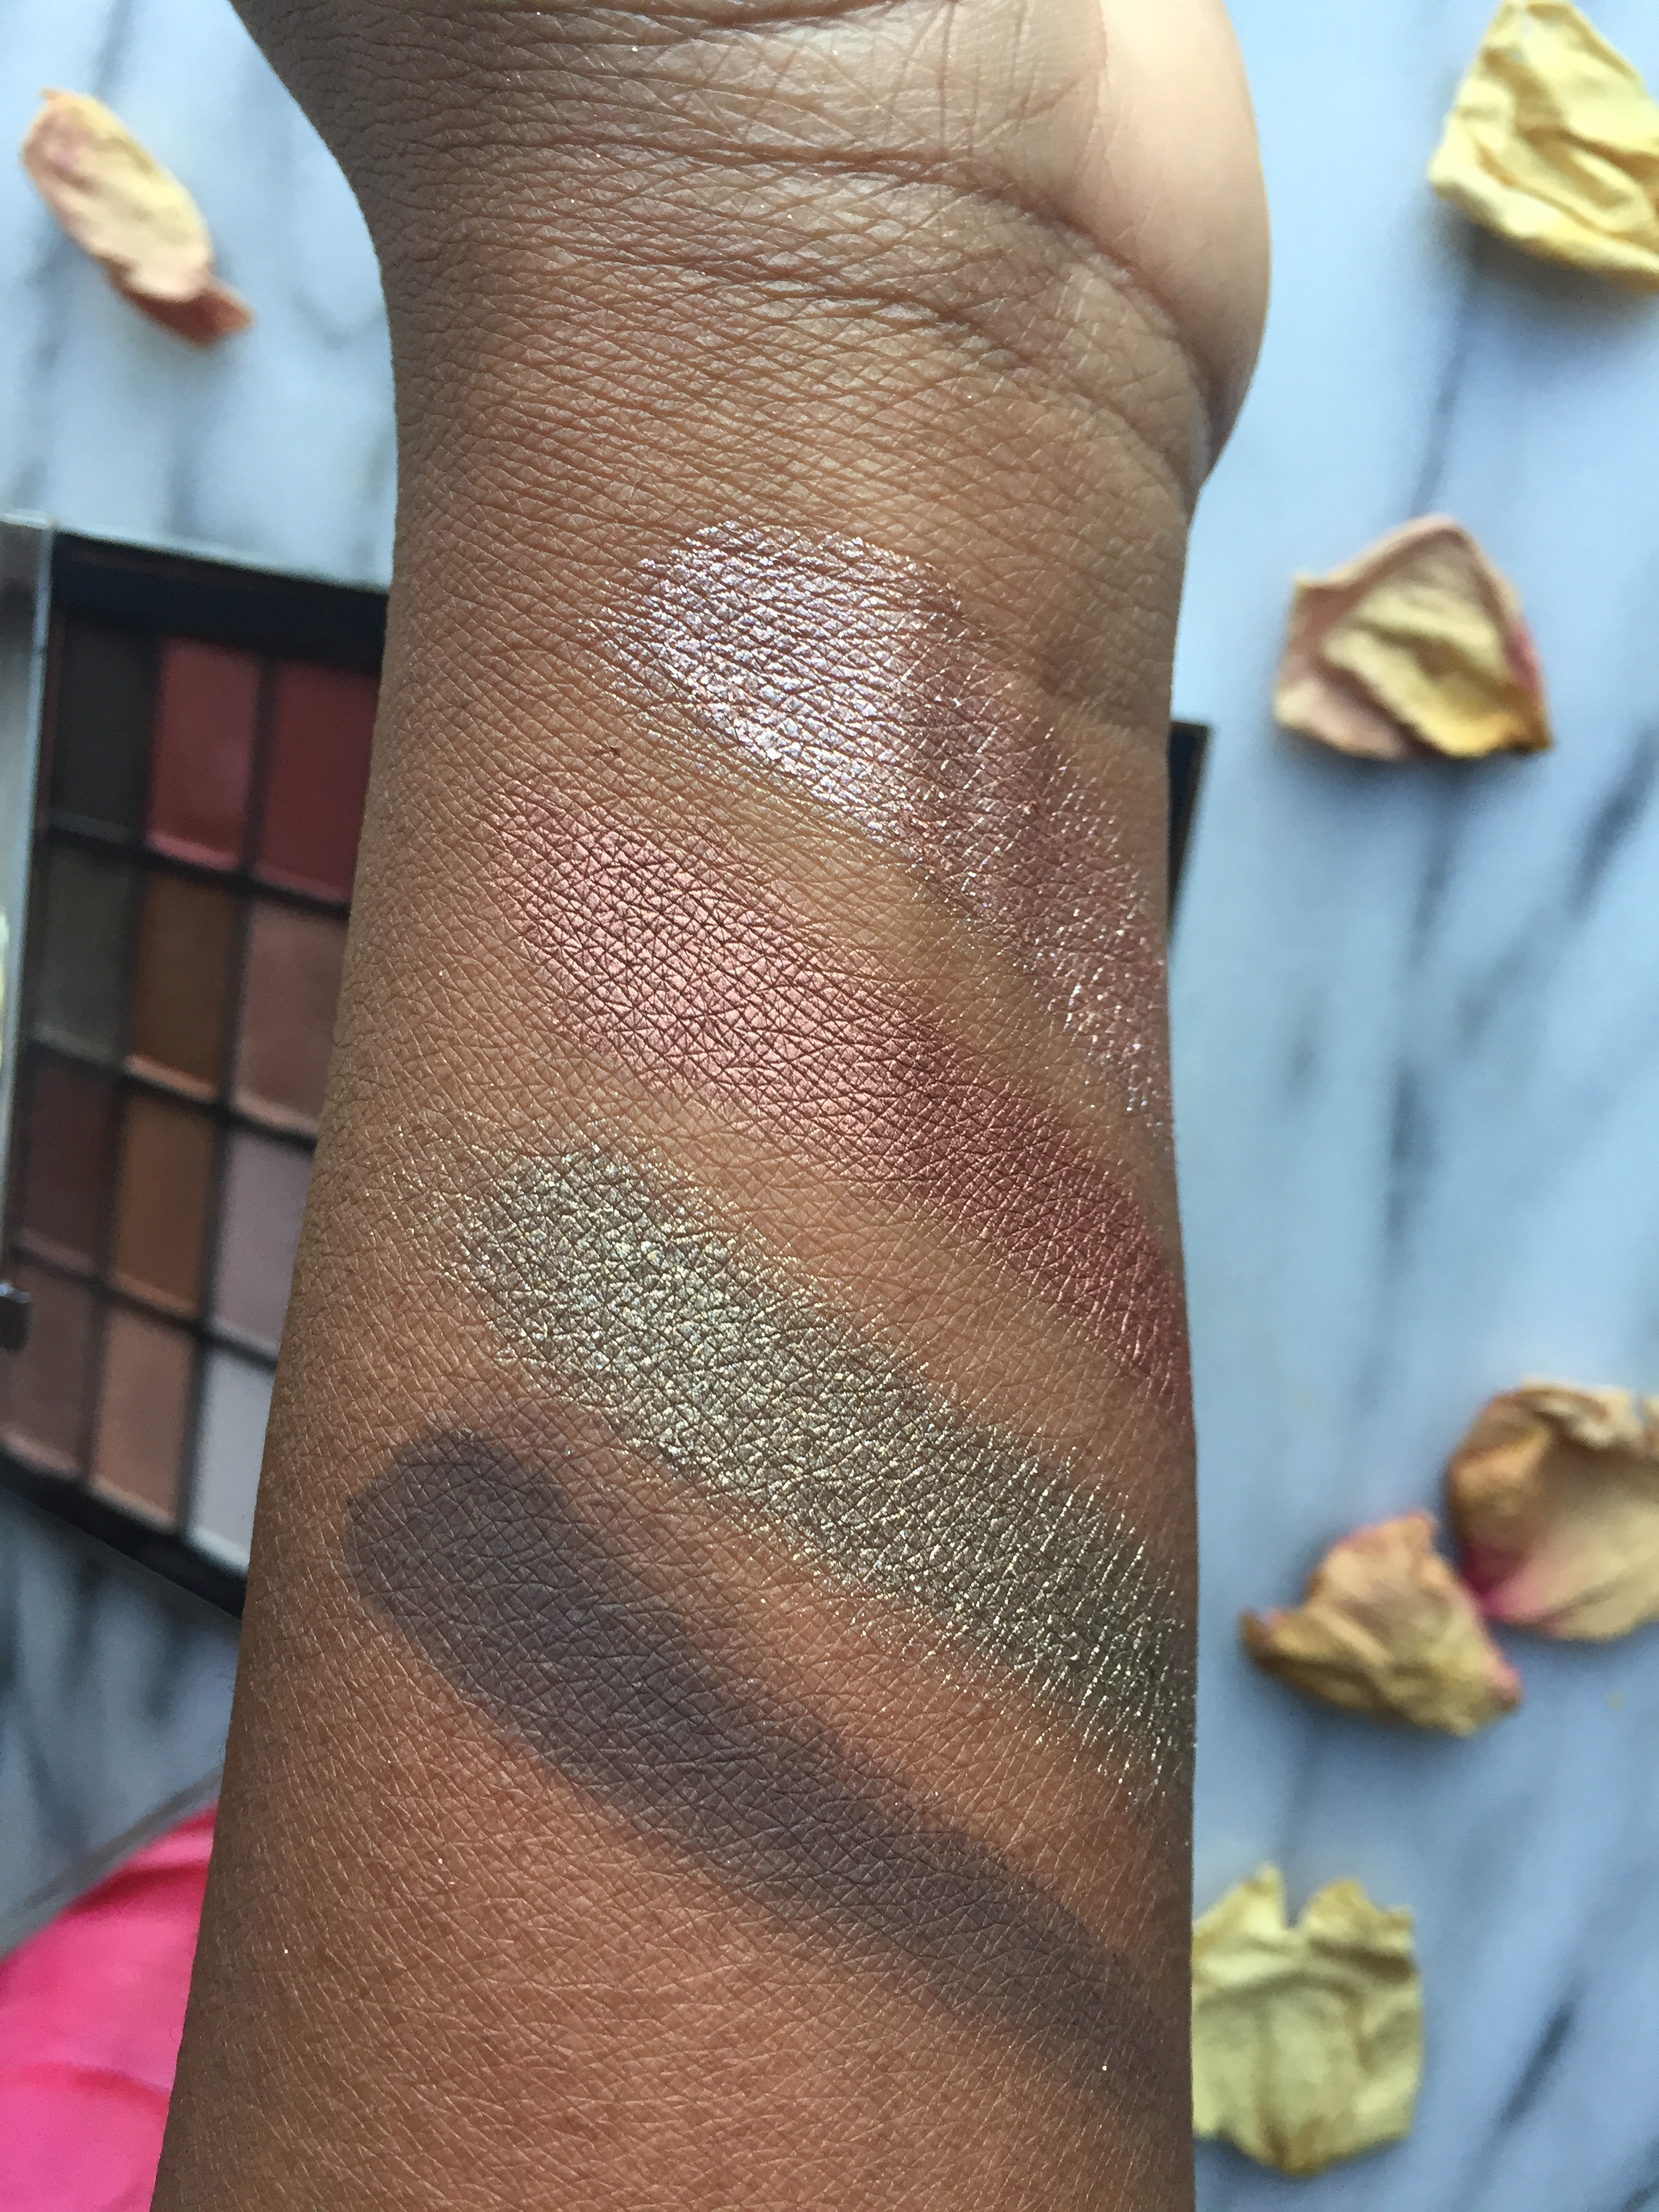 Finger Swatches L to R: Coconut Grove, Fallen Star, LaLa, Shooting Star